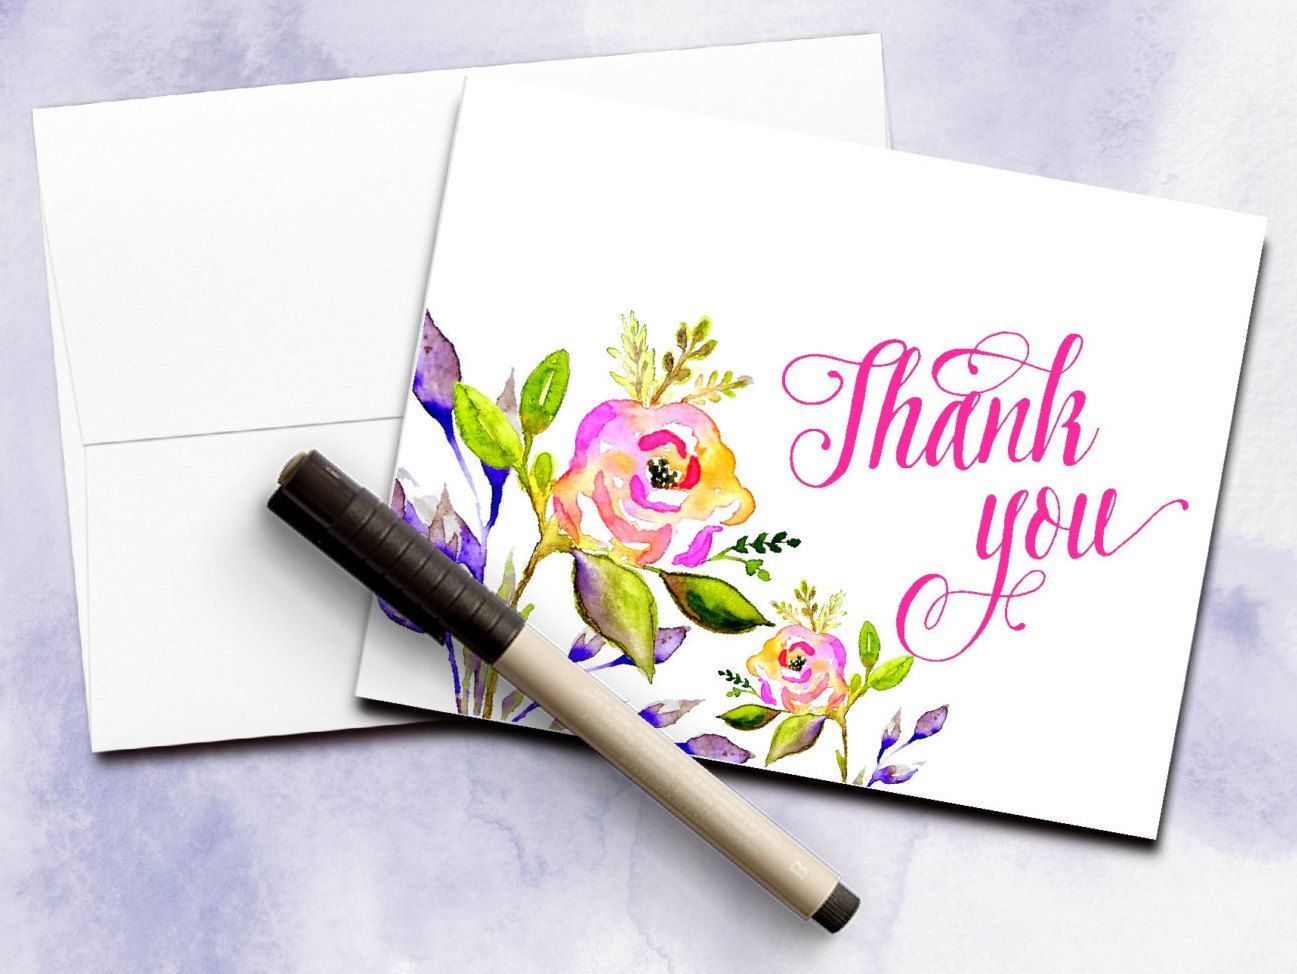 Thank you card watercolor card modern calligraphy floral thank you card watercolor card modern calligraphy floral greeting card watercolor greeting kristyandbryce Images